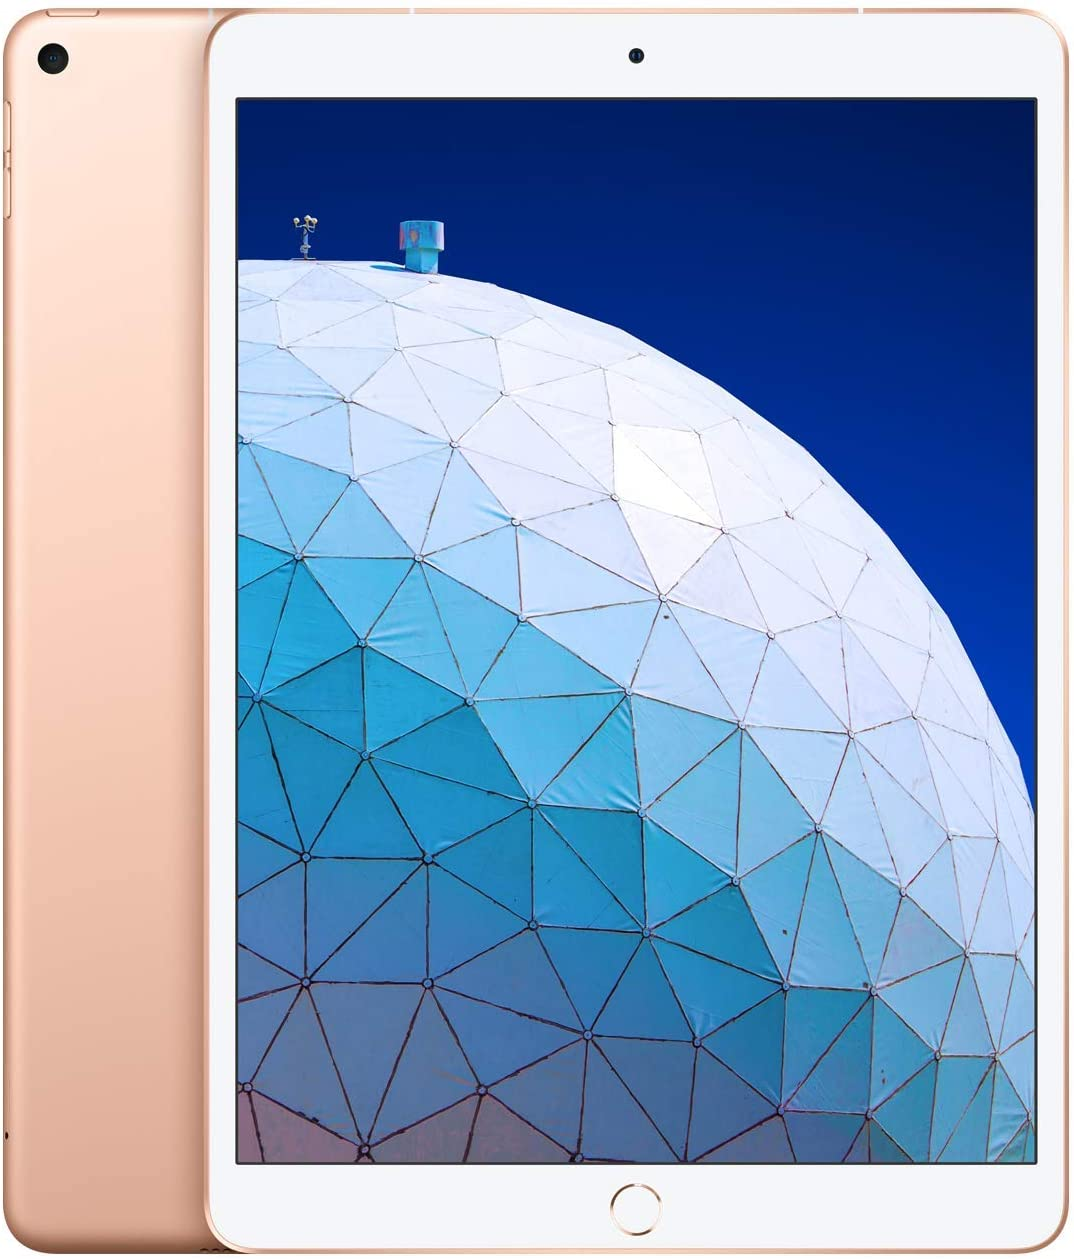 Apple iPad Air (de 10,5 pulgadas y 256 GB con Wi-Fi + Cellular) - Oro (Ultimo Modelo)